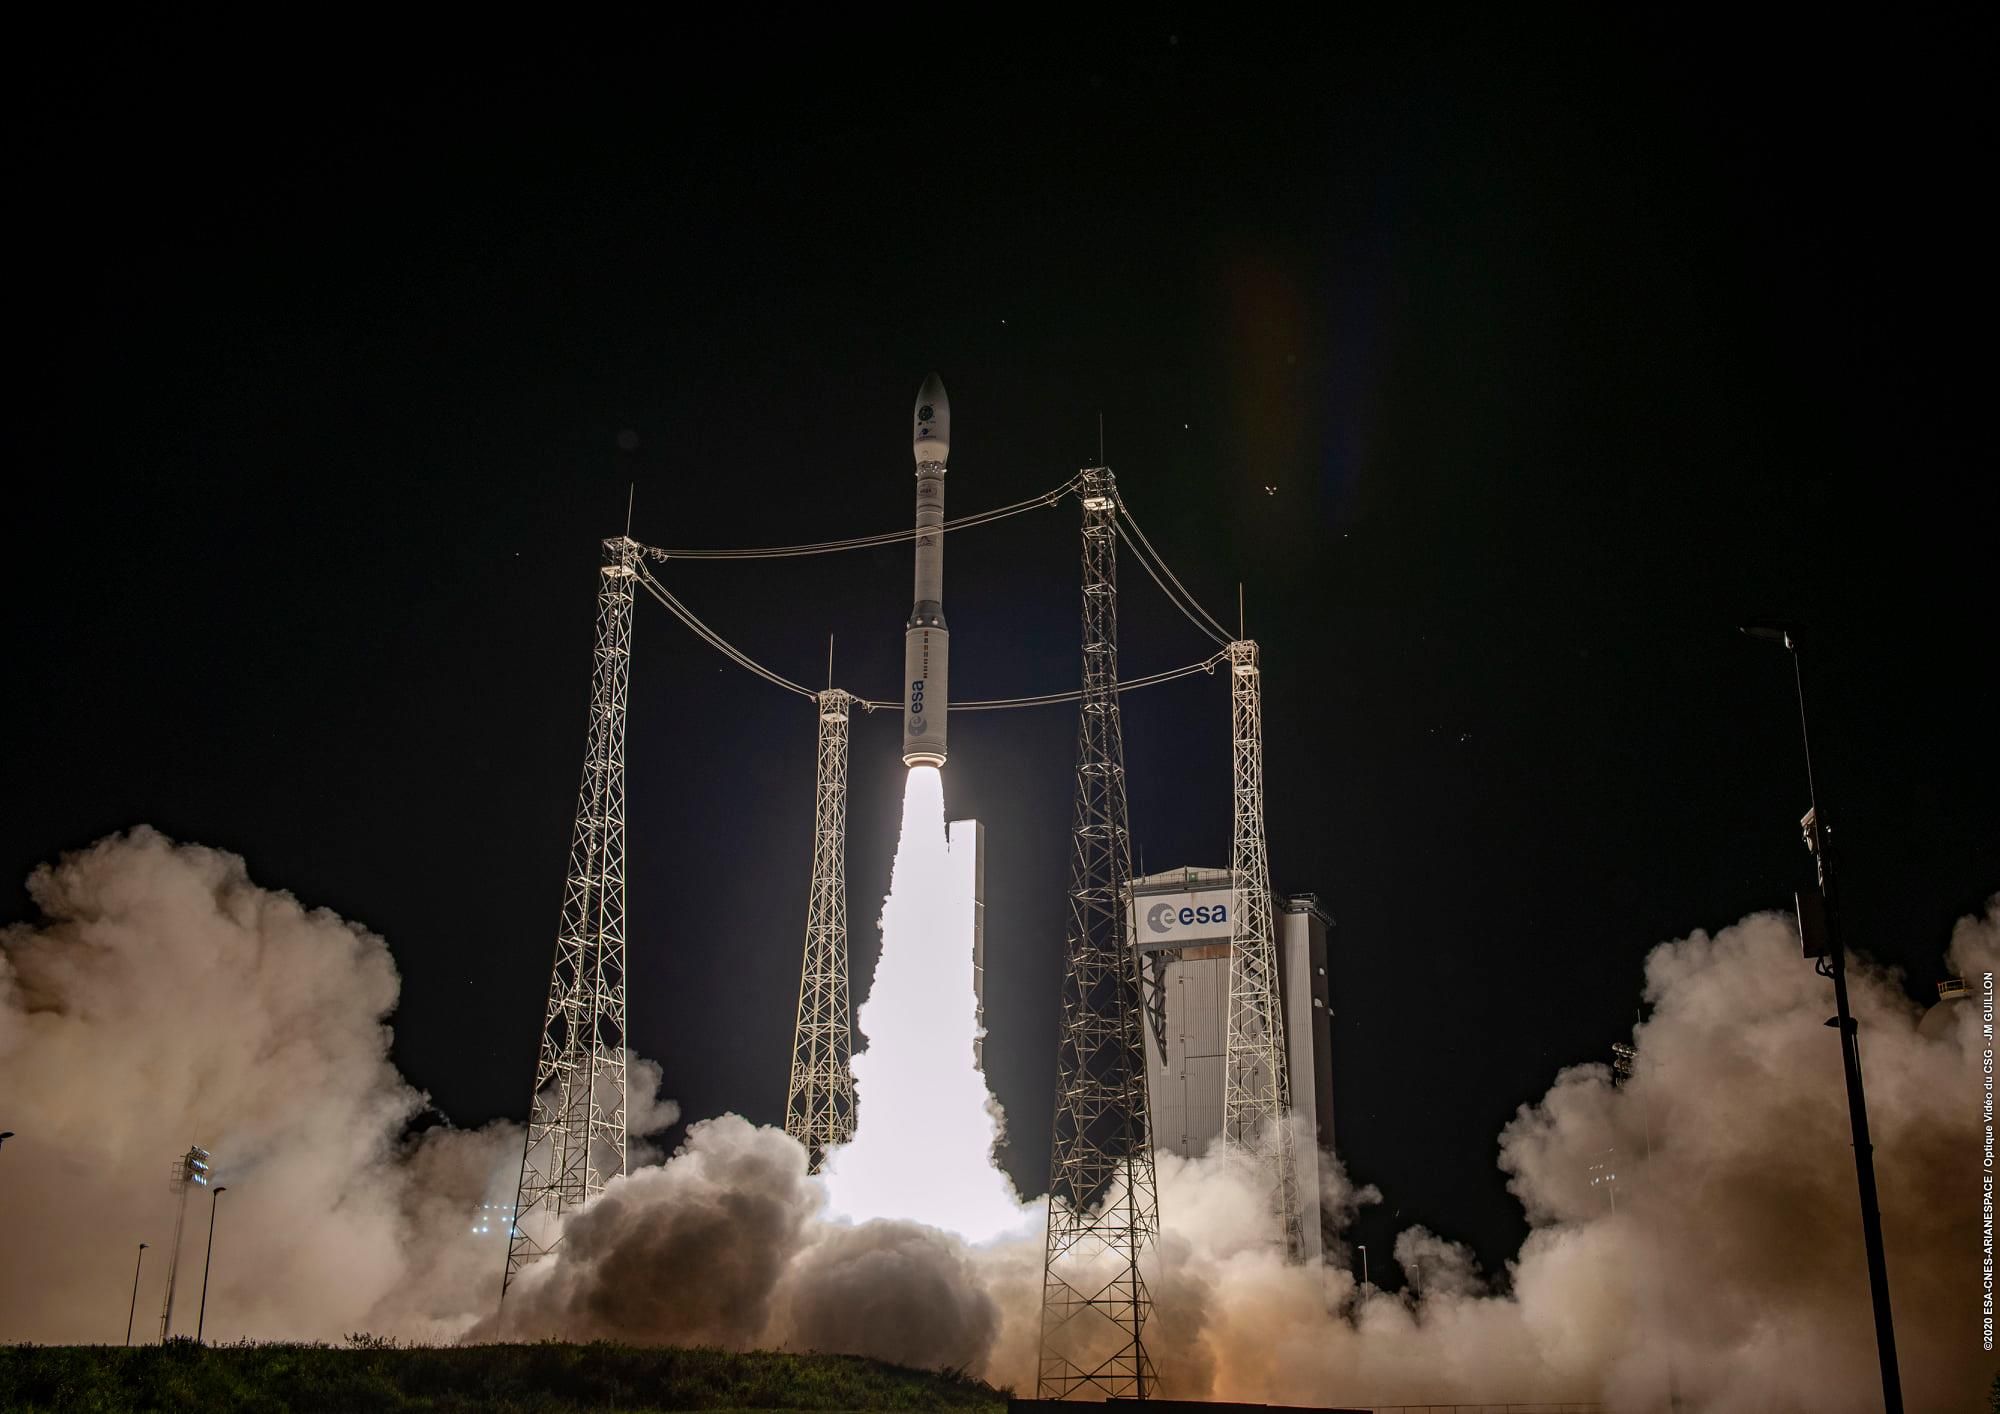 Vega è in orbita: il razzo italiano dispiega 53 satelliti